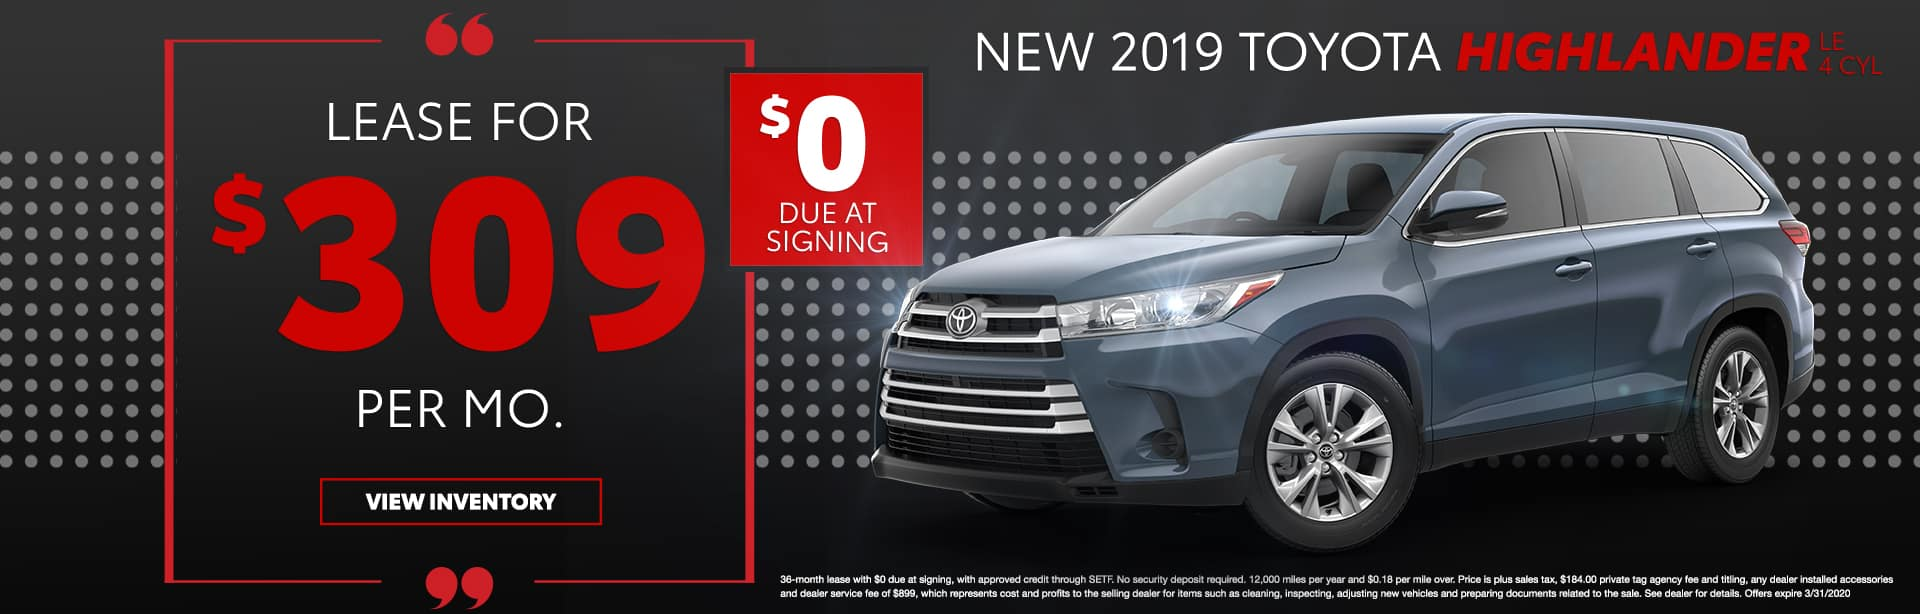 New 2019 Toyota Highlander LE 4 Cyl | Lease For $309 Per Mo | $0 Due At Signing